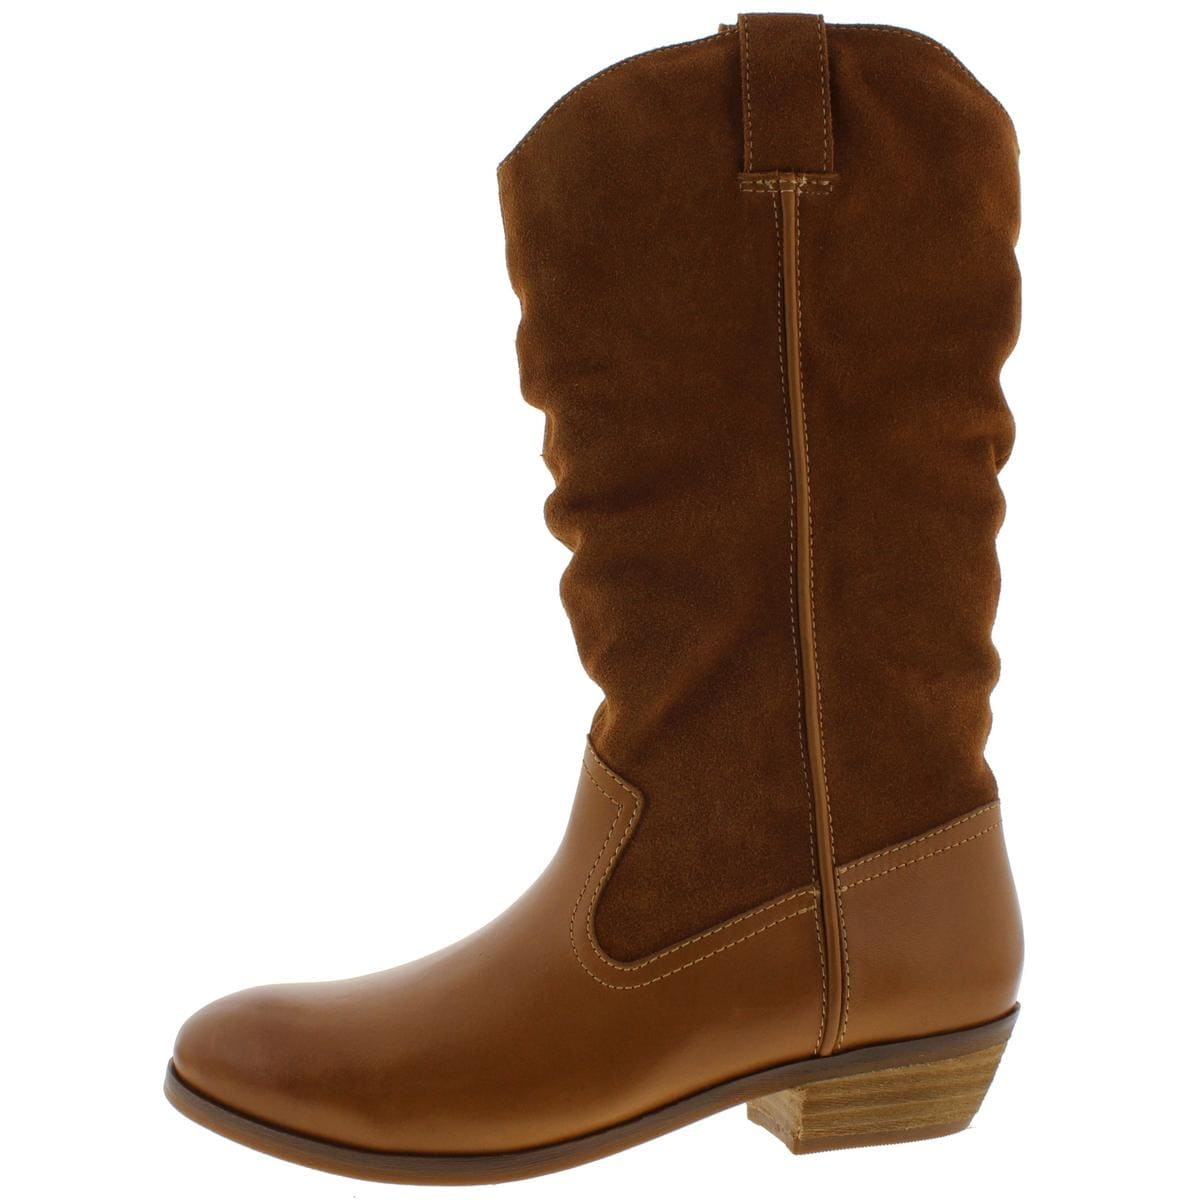 a59b15c2379a Shop SoftWalk Womens Rock Creek Mid-Calf Boots Leather Suede - Free  Shipping On Orders Over  45 - Overstock - 14615581